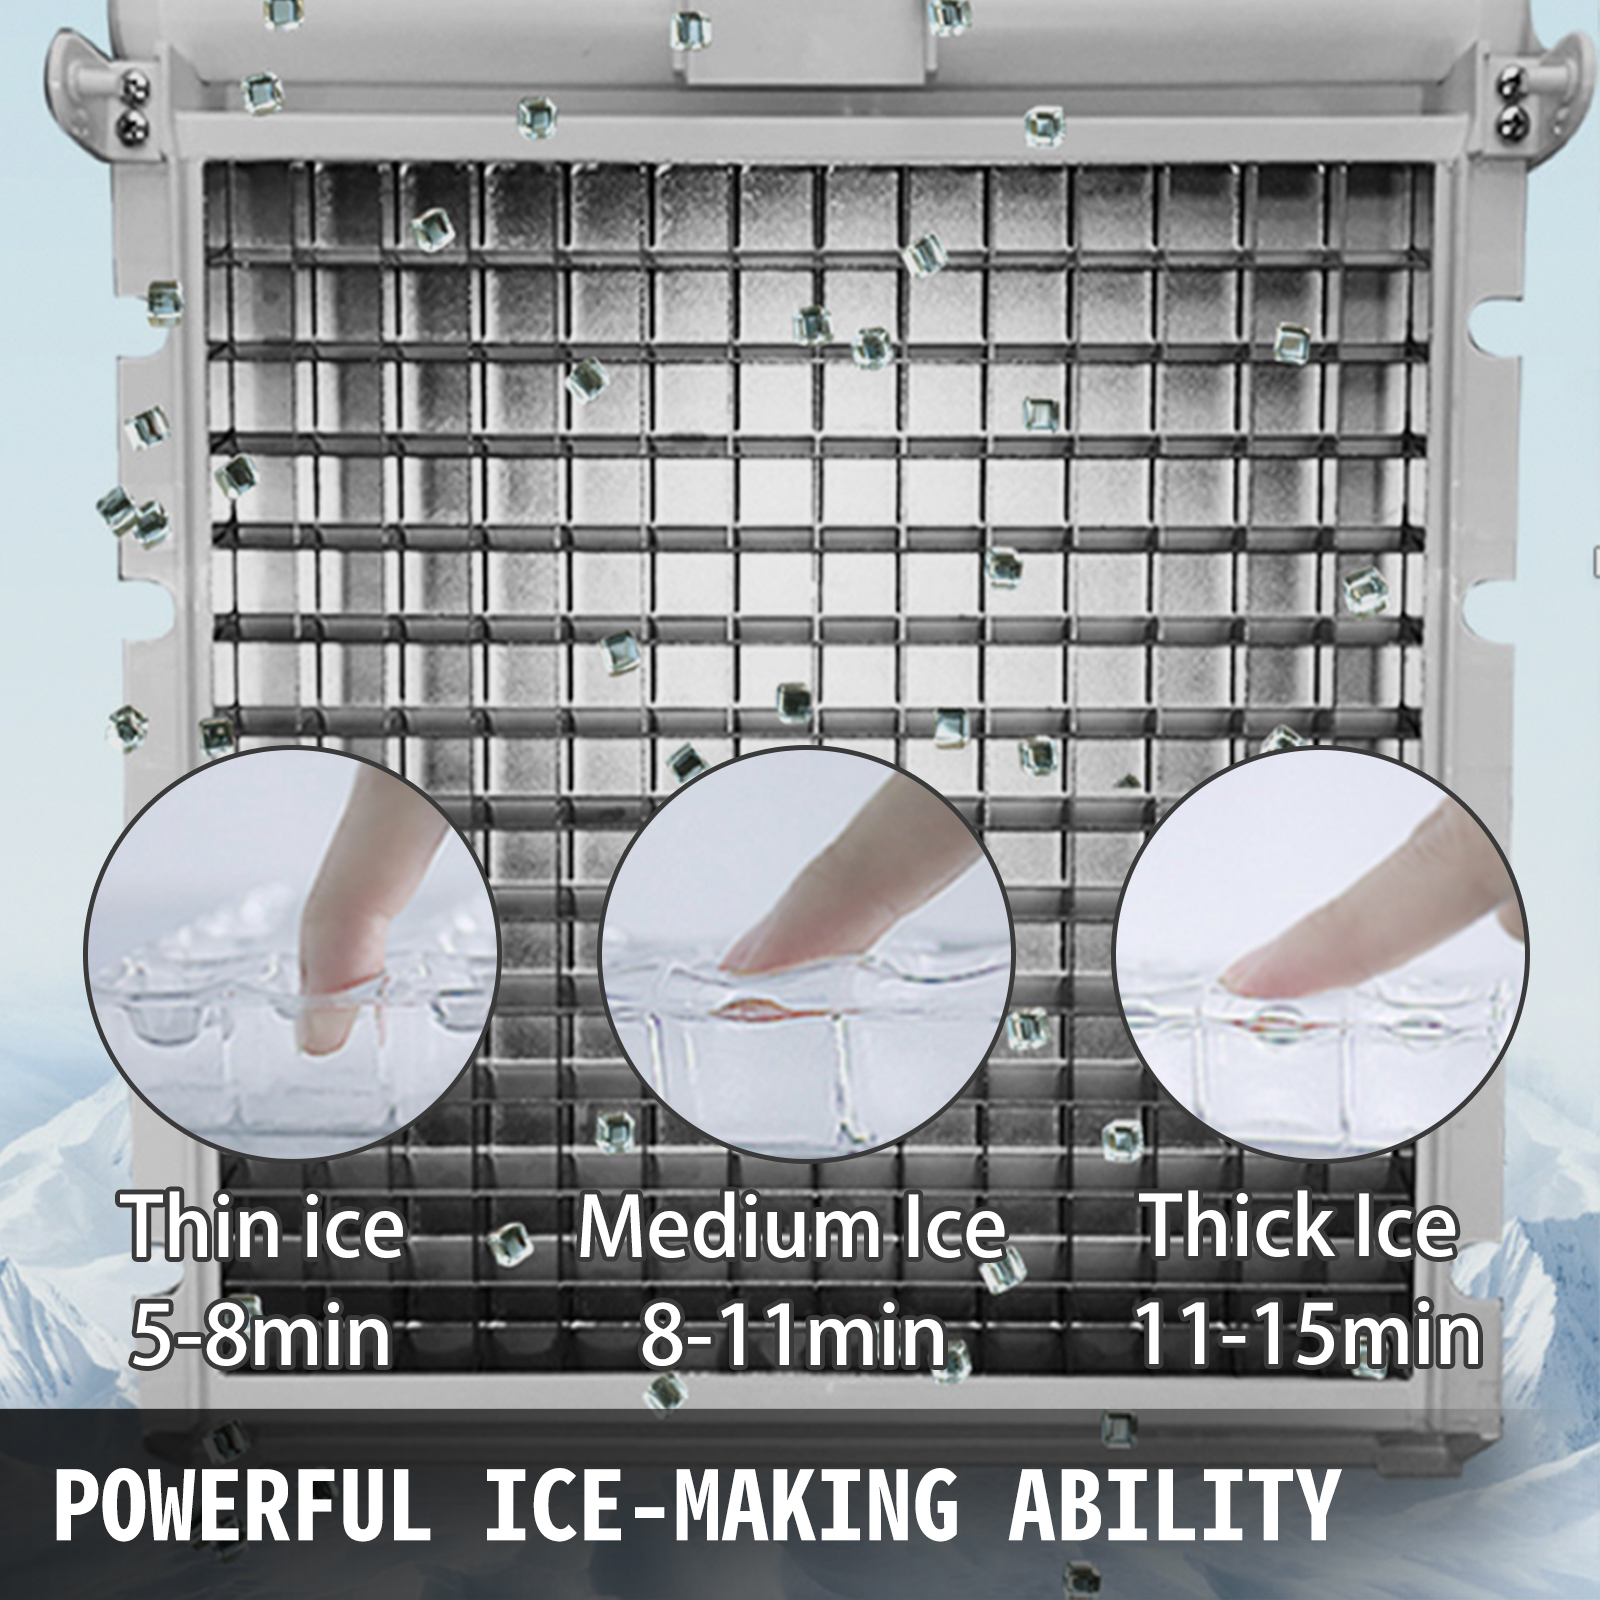 Commercial-Stainless-Steel-Ice-Maker-Ice-Machine-90-110-132-150-265-286-441-lbs thumbnail 15